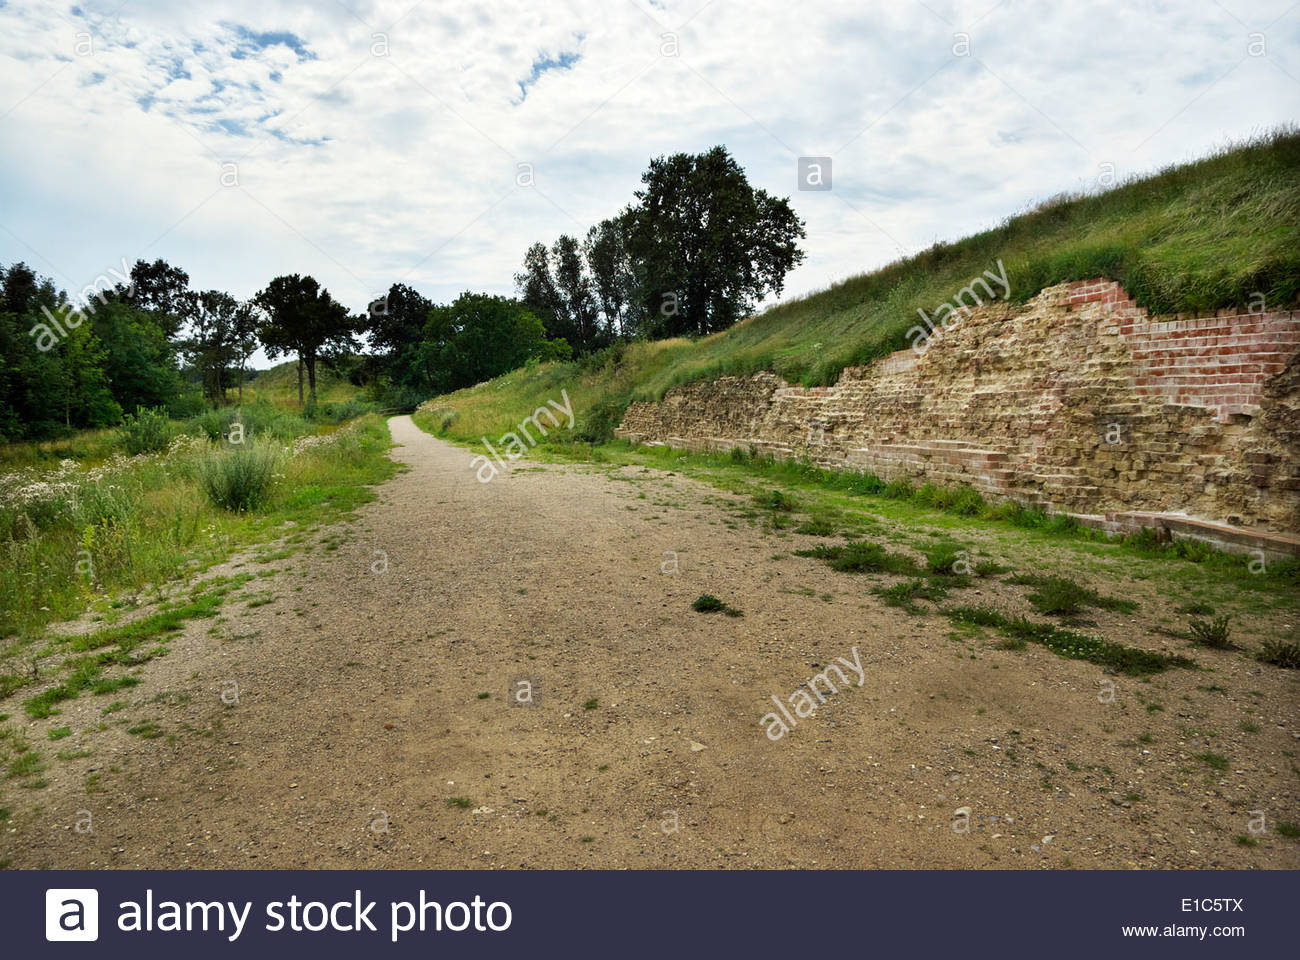 Danevirke, an earthwork fortification 19 mi (30 km) long built in phases between AD 737 and early 13th century by Danish rulers. - Stock Image